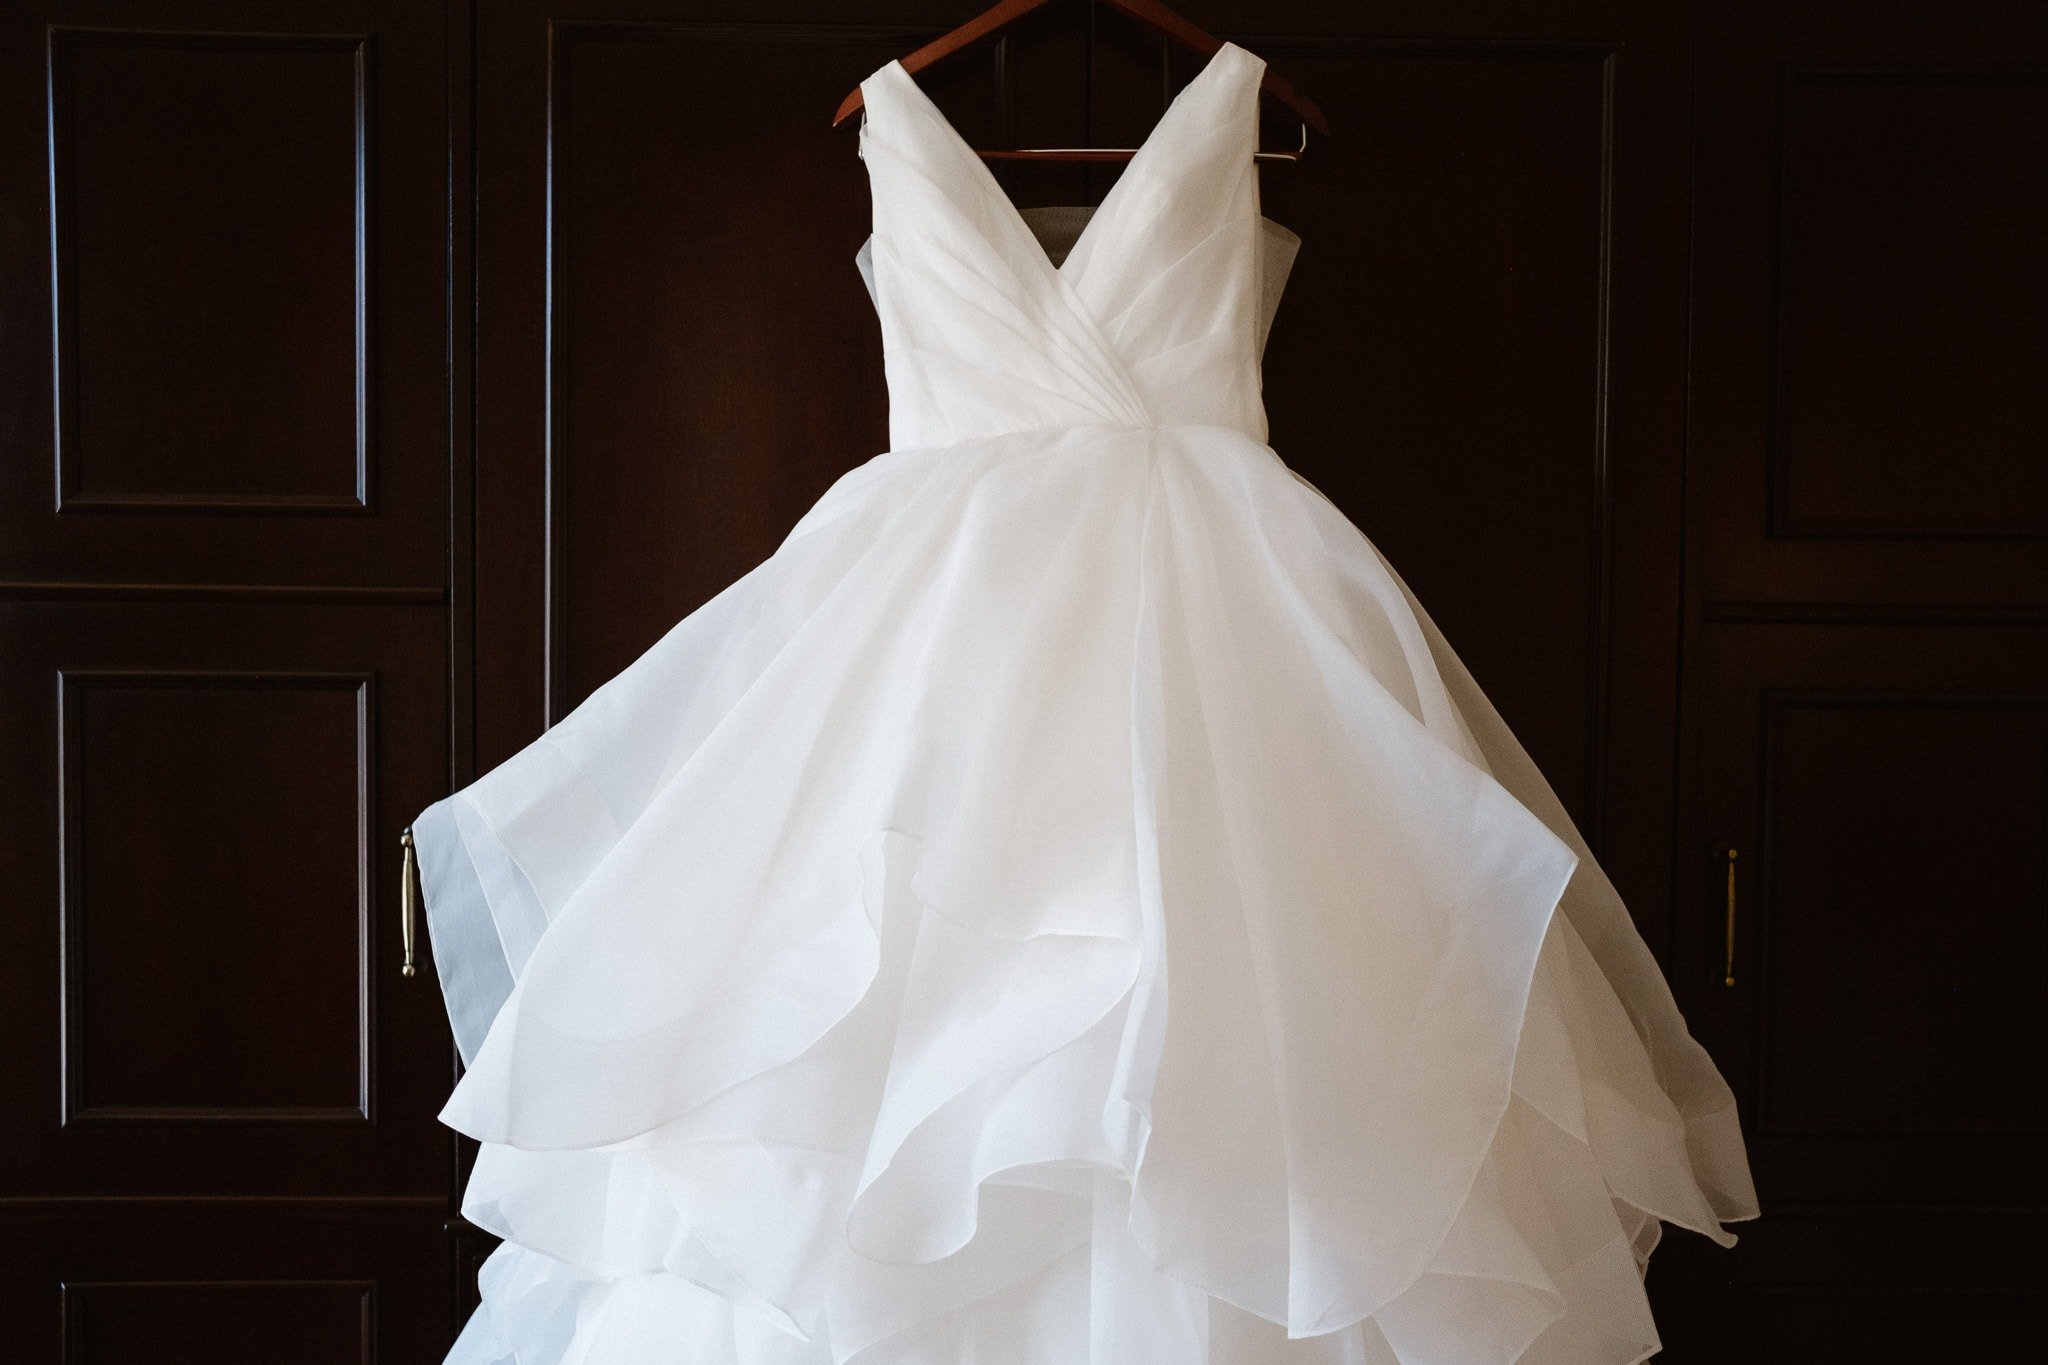 Wedding dress with elegant top and fluffy tulle skirt